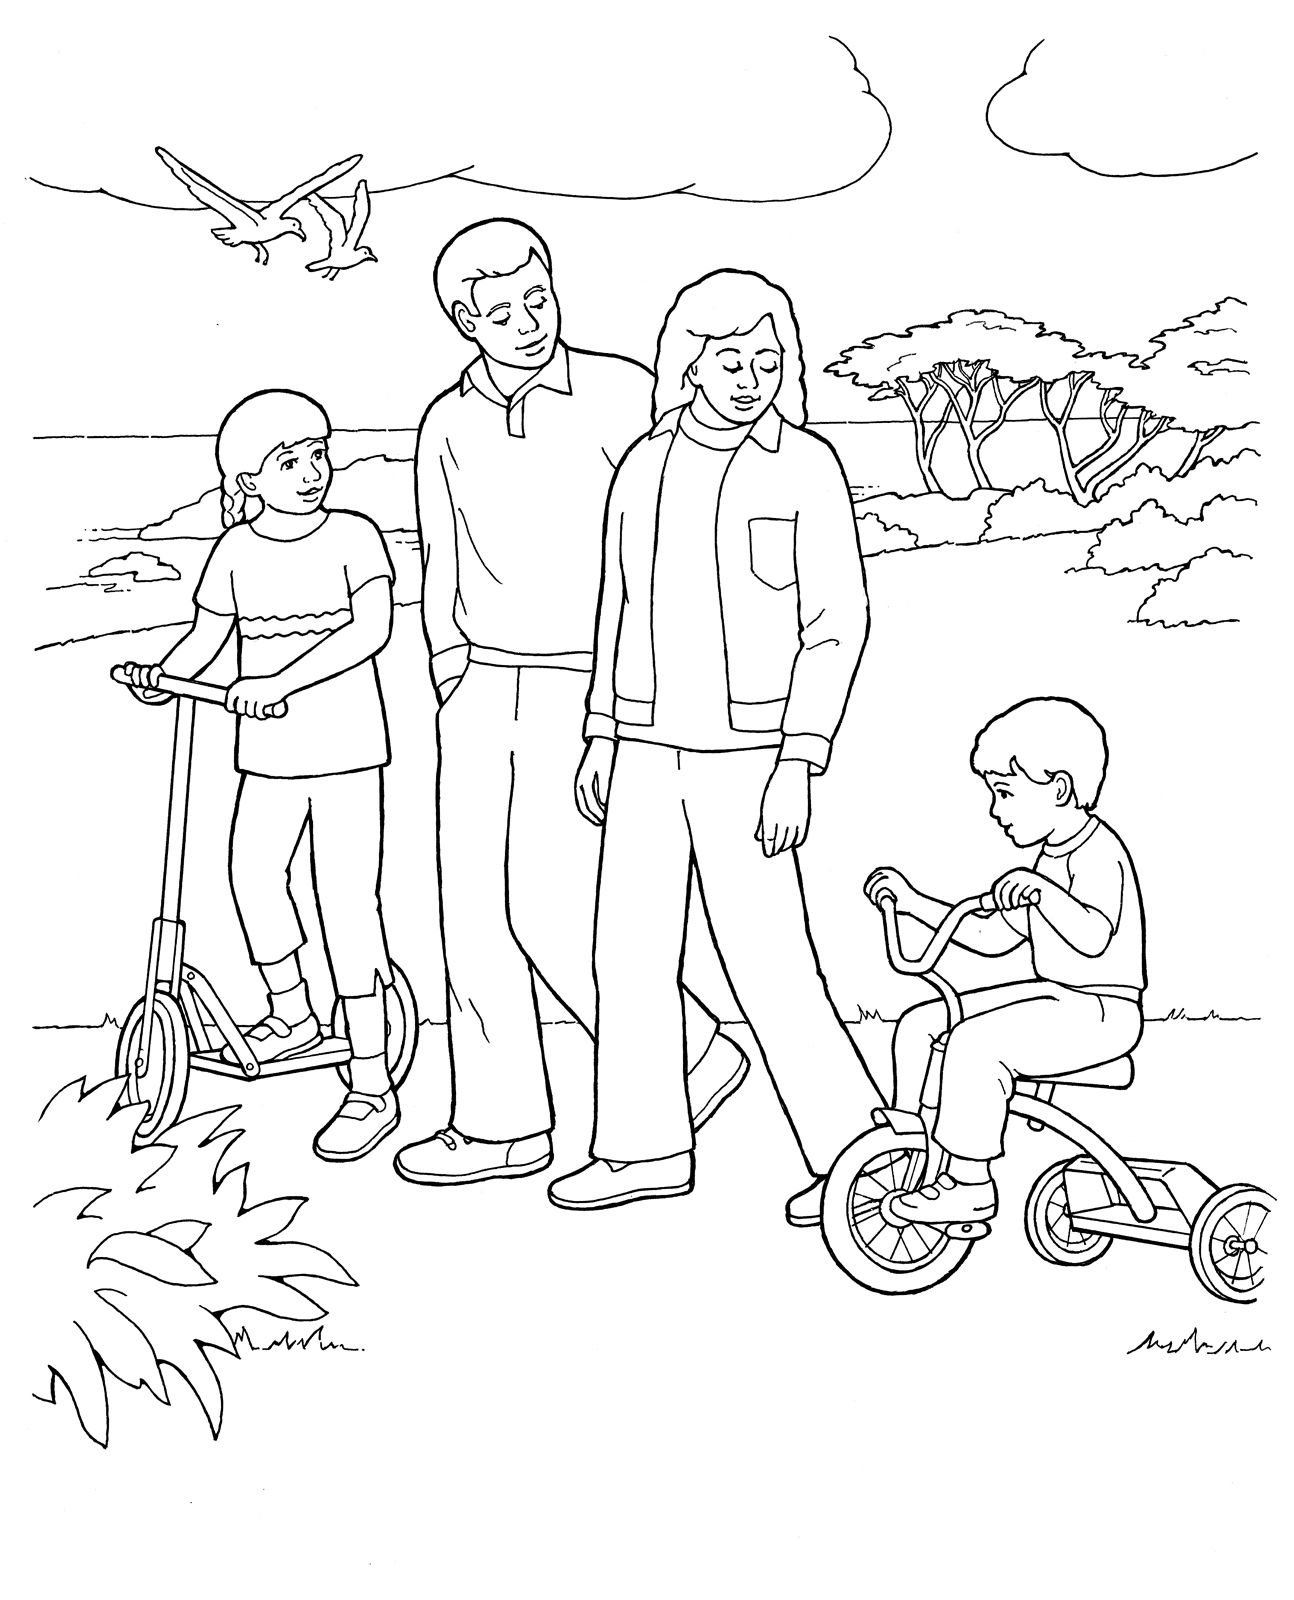 Primary Coloring Page Family Walking Together Ldsprimary Mormons Family Coloring Pages Lds Coloring Pages Family Coloring